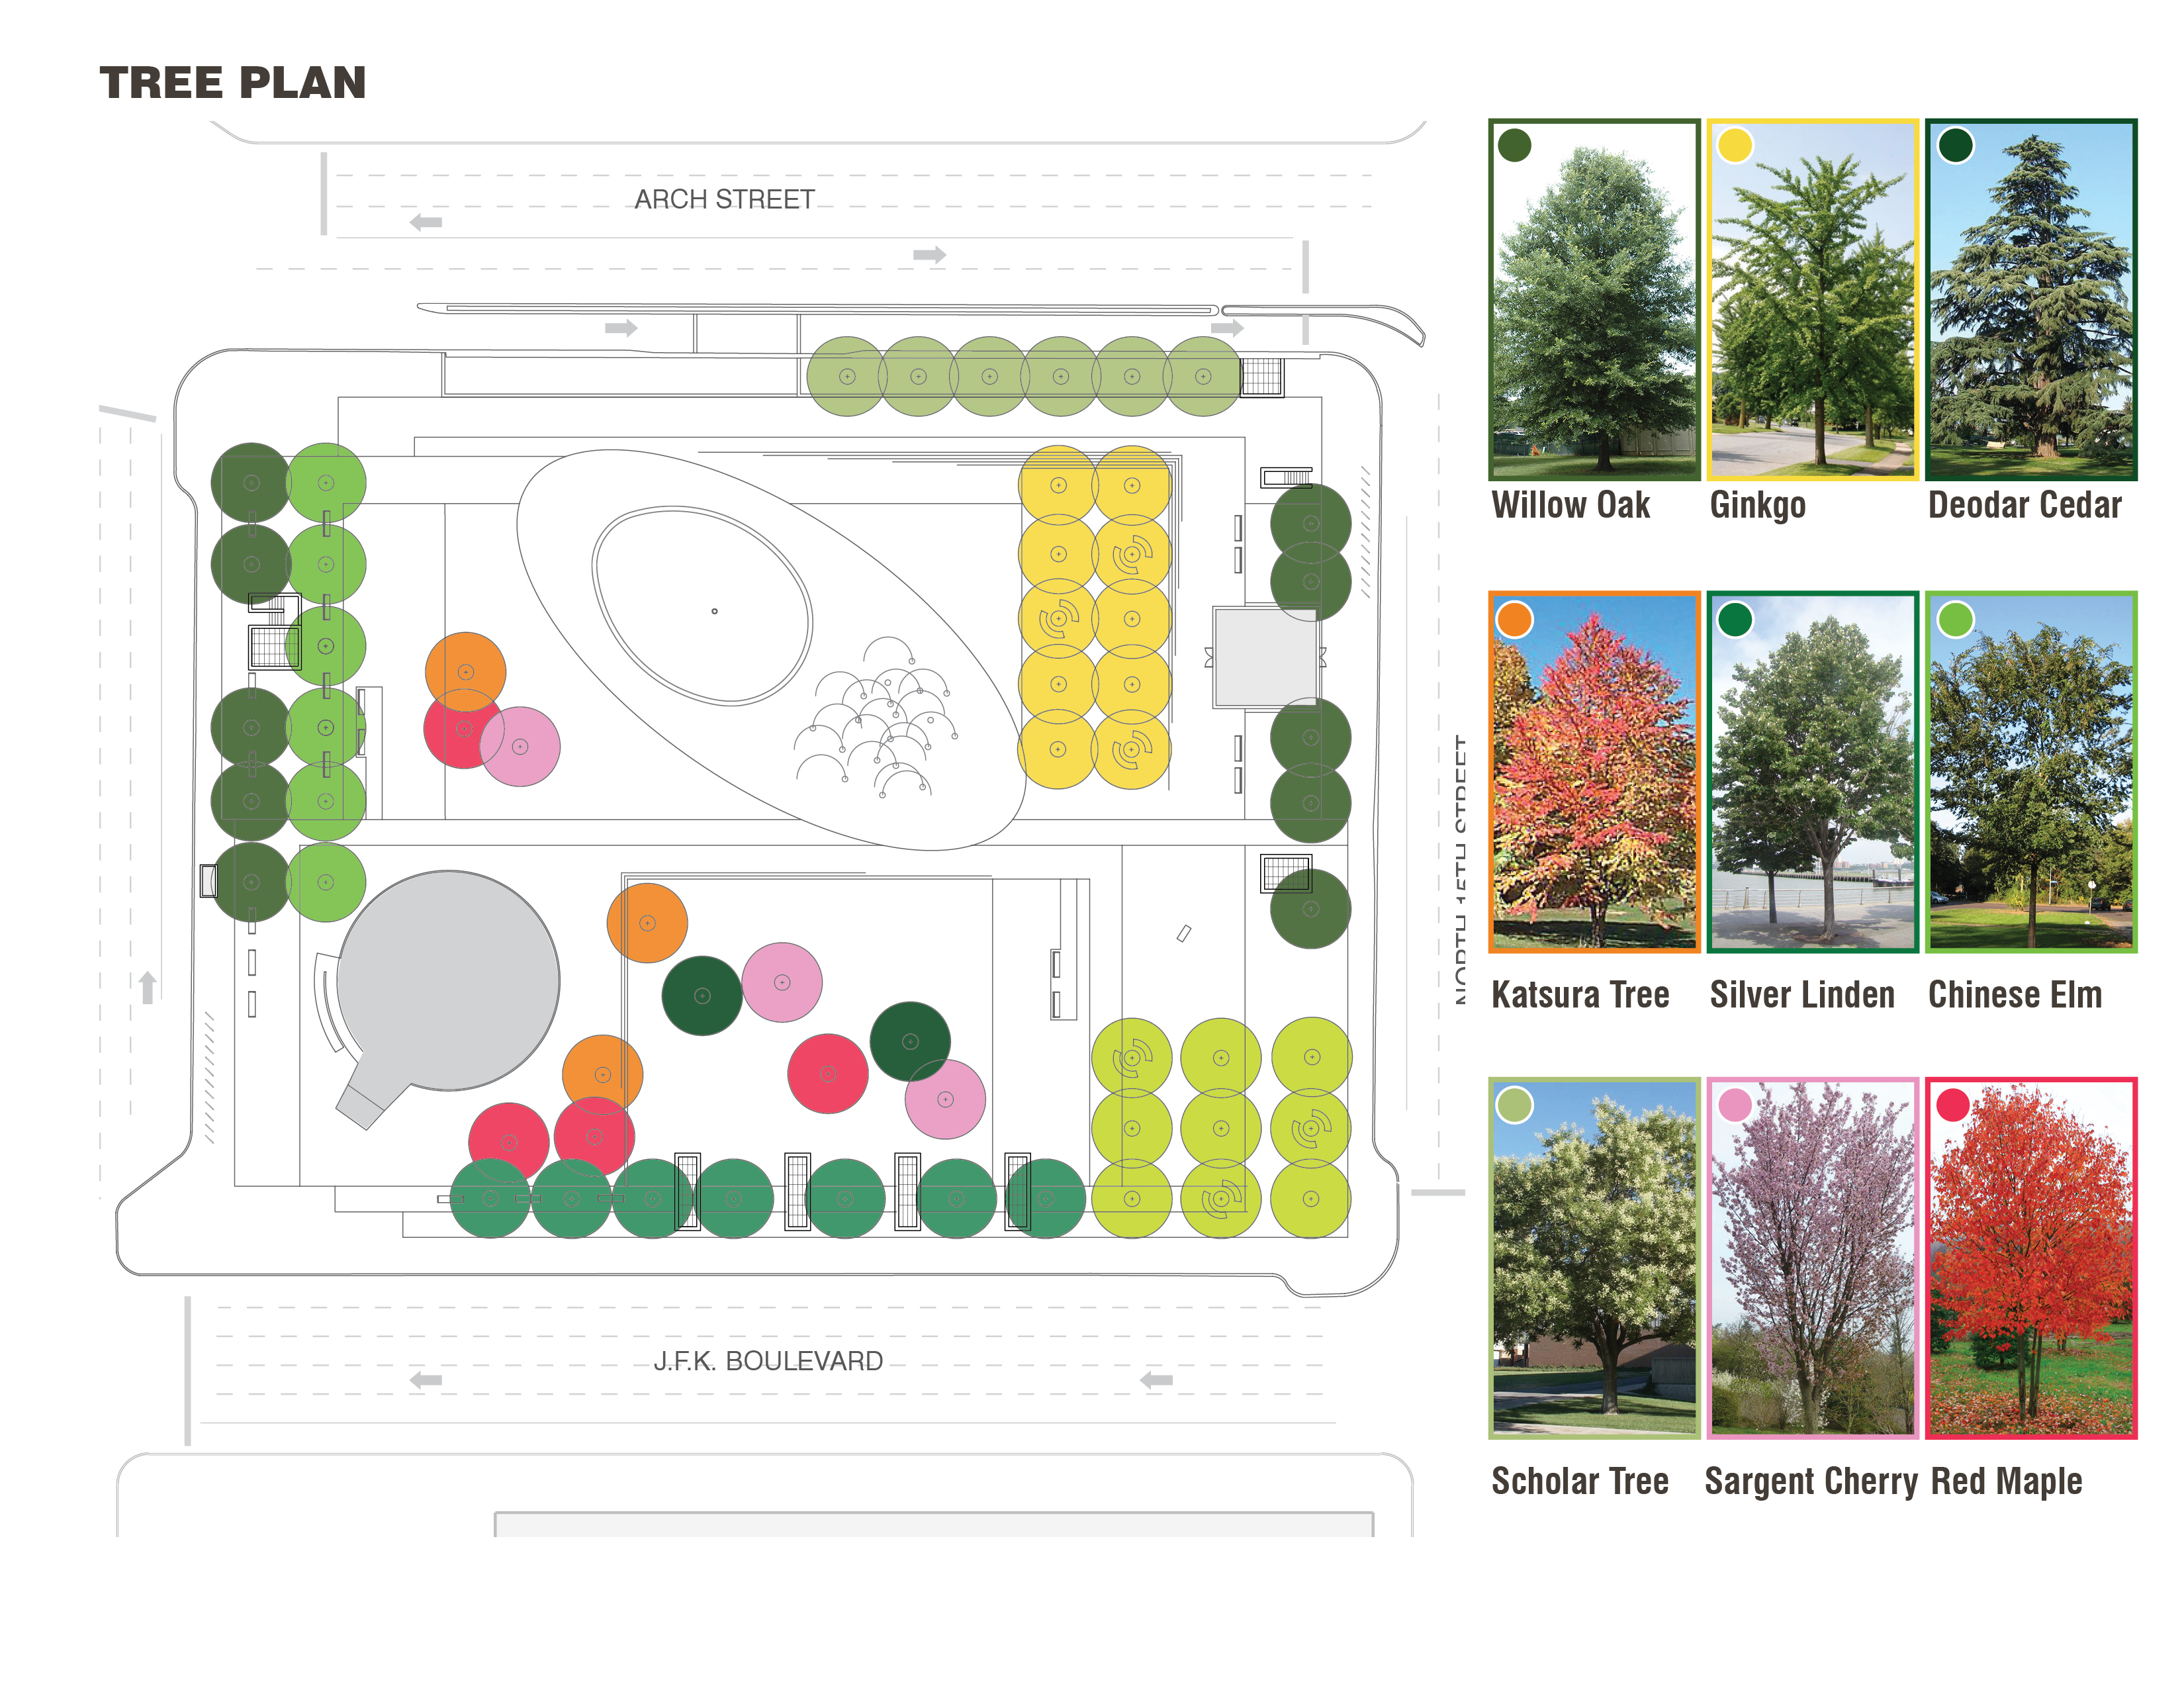 Tree Plan of LOVE Park / JFK Plaza, October 2015 | Hargreaves